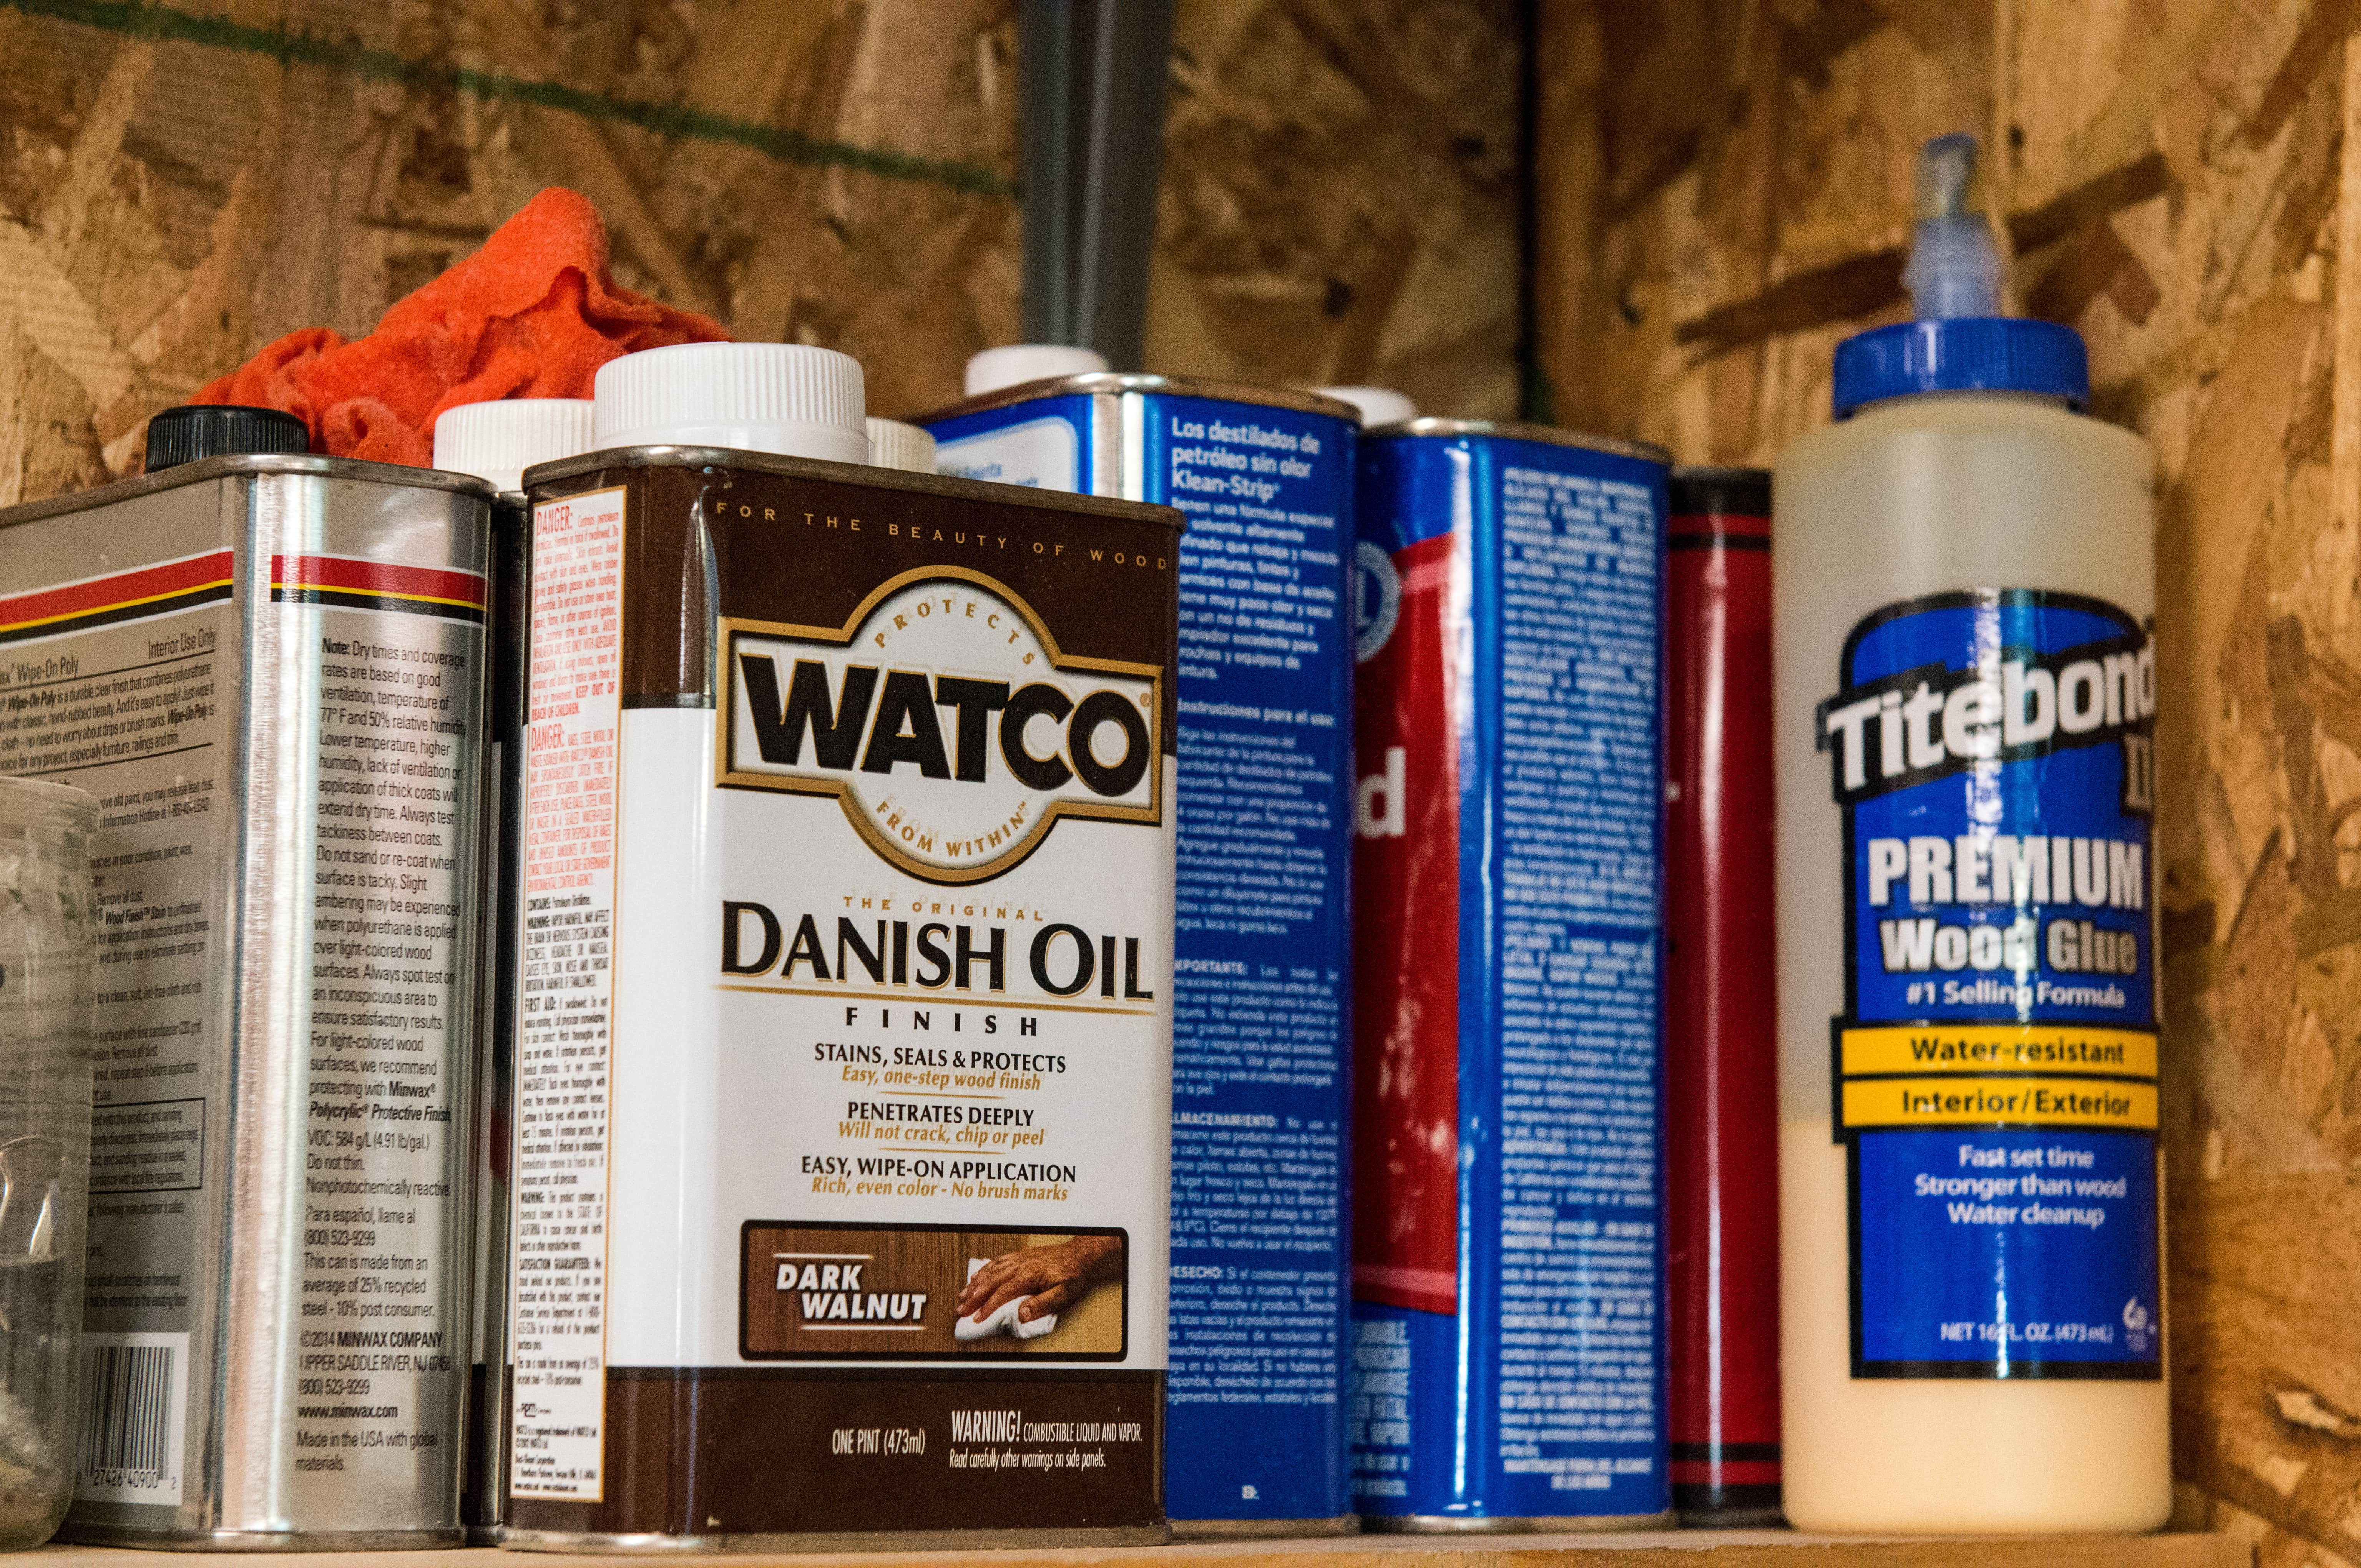 Wood oil and adhesive products that woodworkers use on a shelf in a workshop